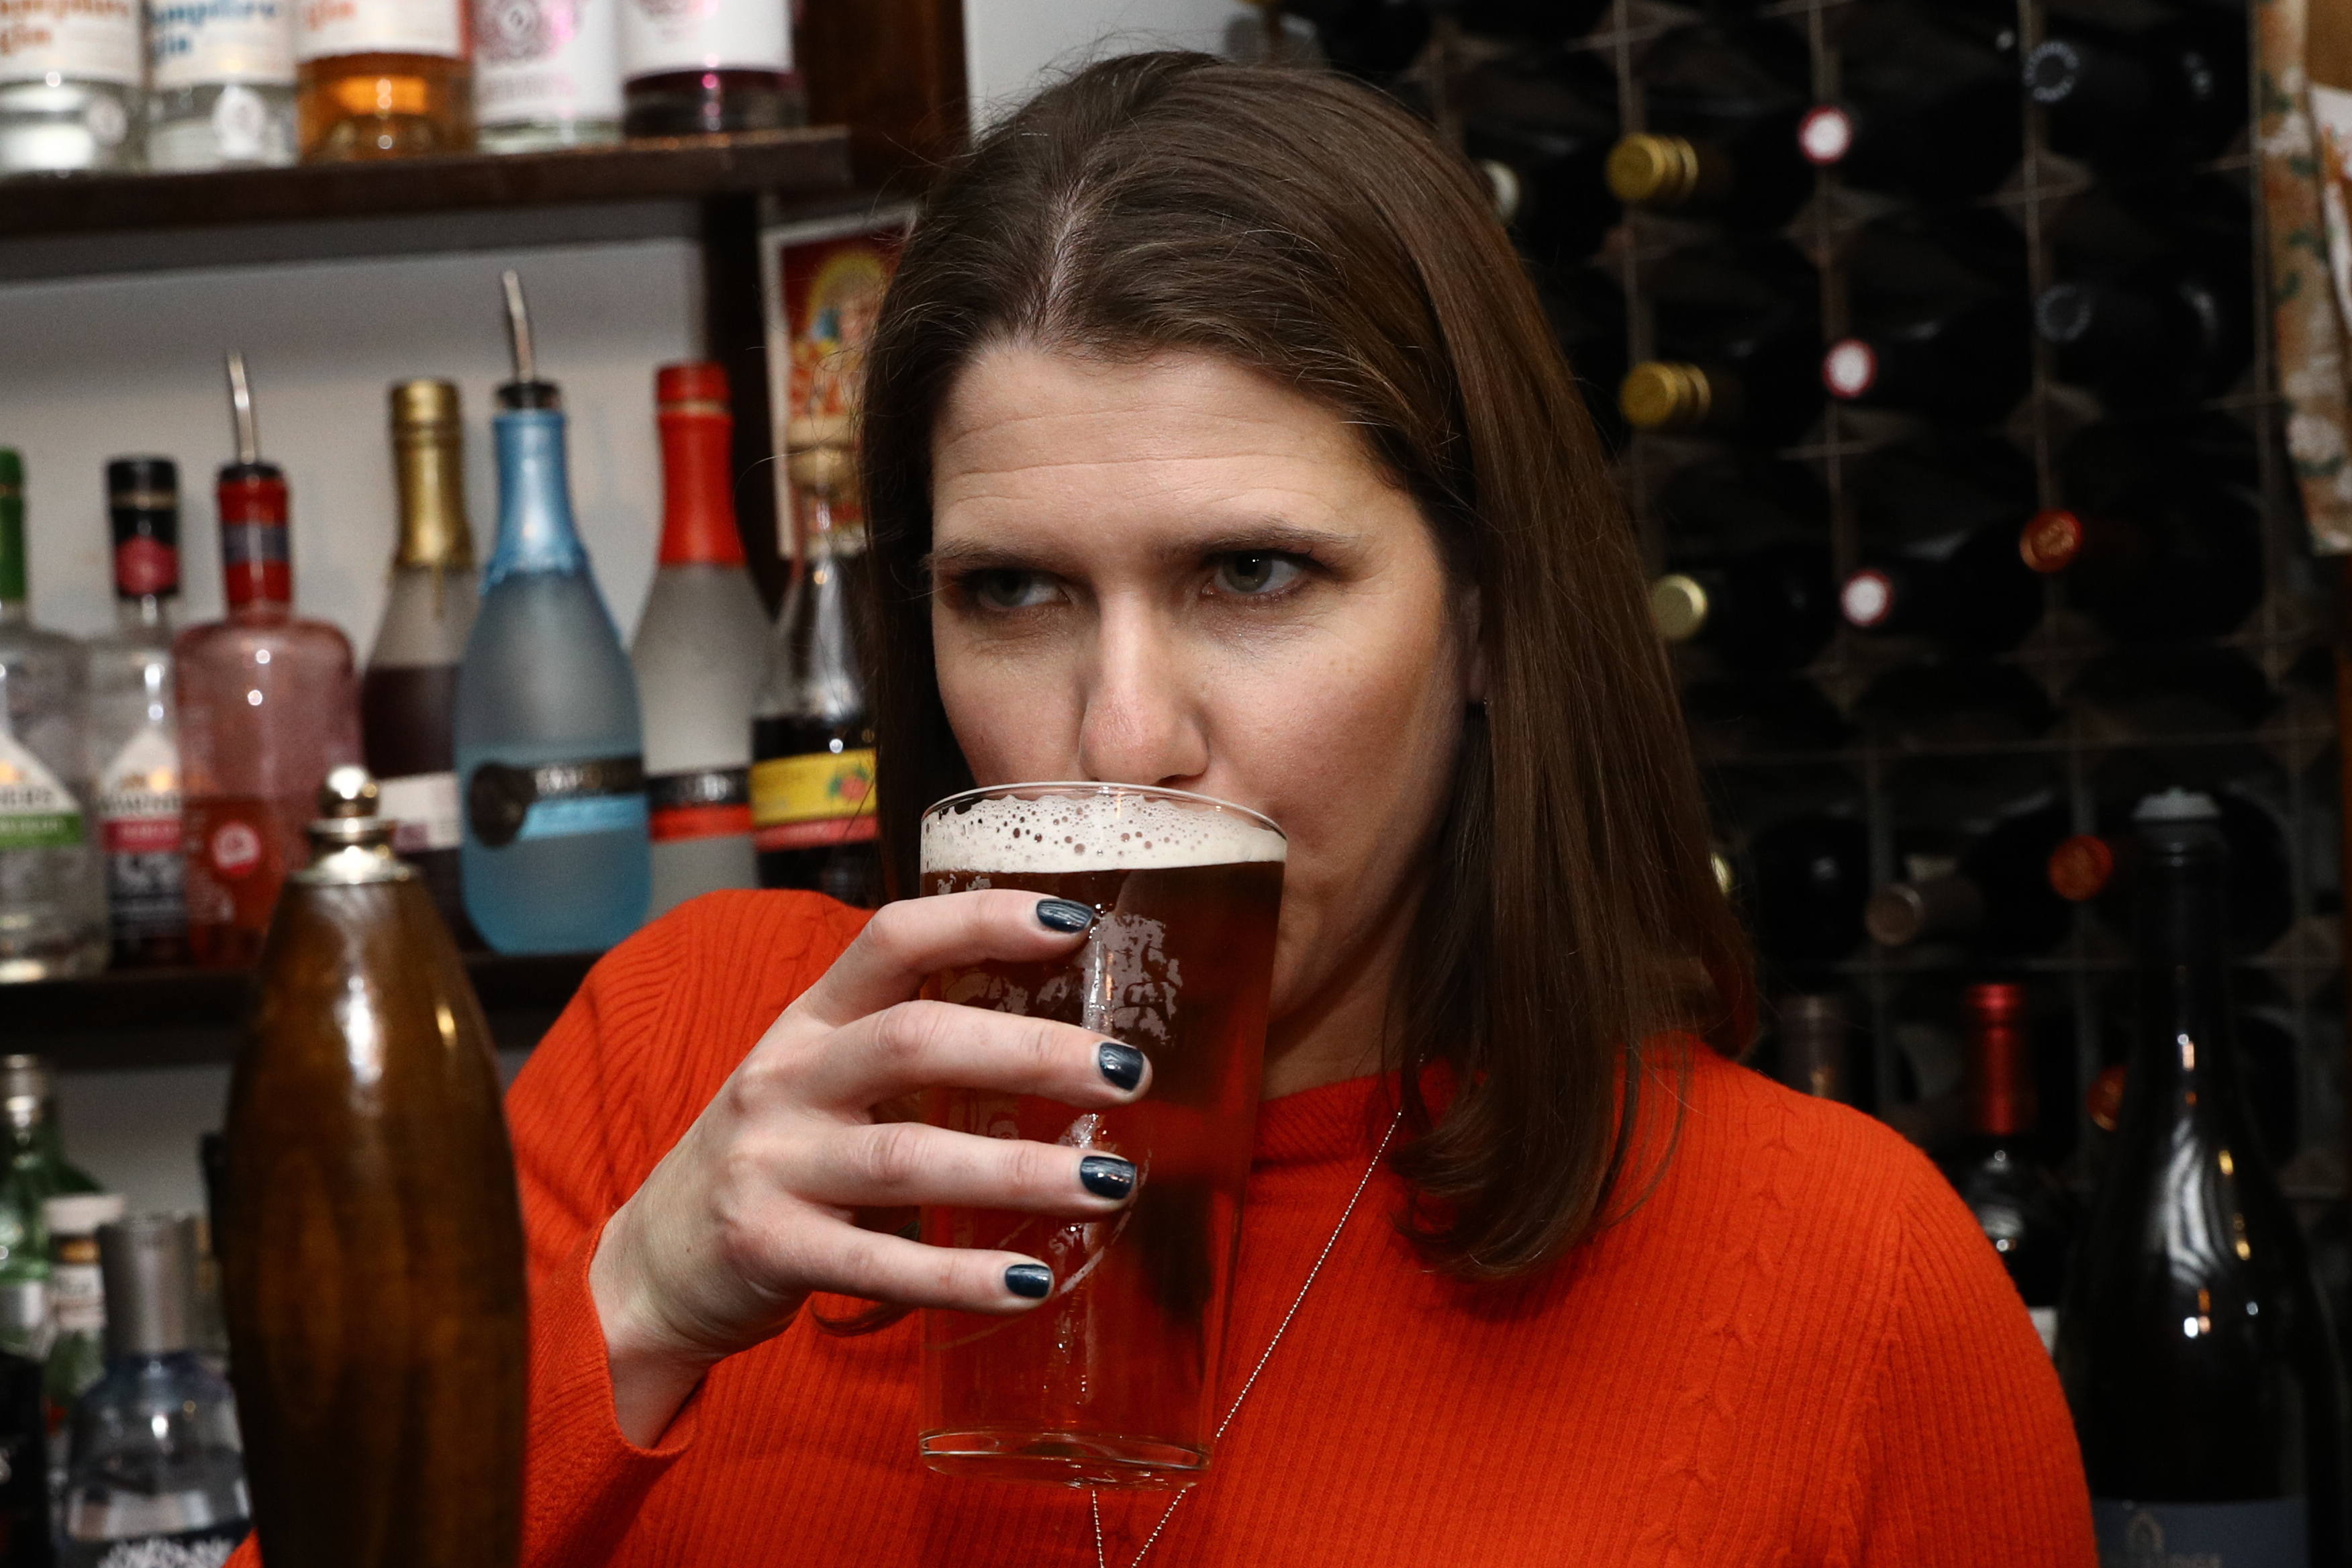 Liberal Democrat Leader Jo Swinson enjoys a pint in Dylans - The Kings Arms on Small Business Saturday during her visit to St Albans, while on the General Election campaign trail.